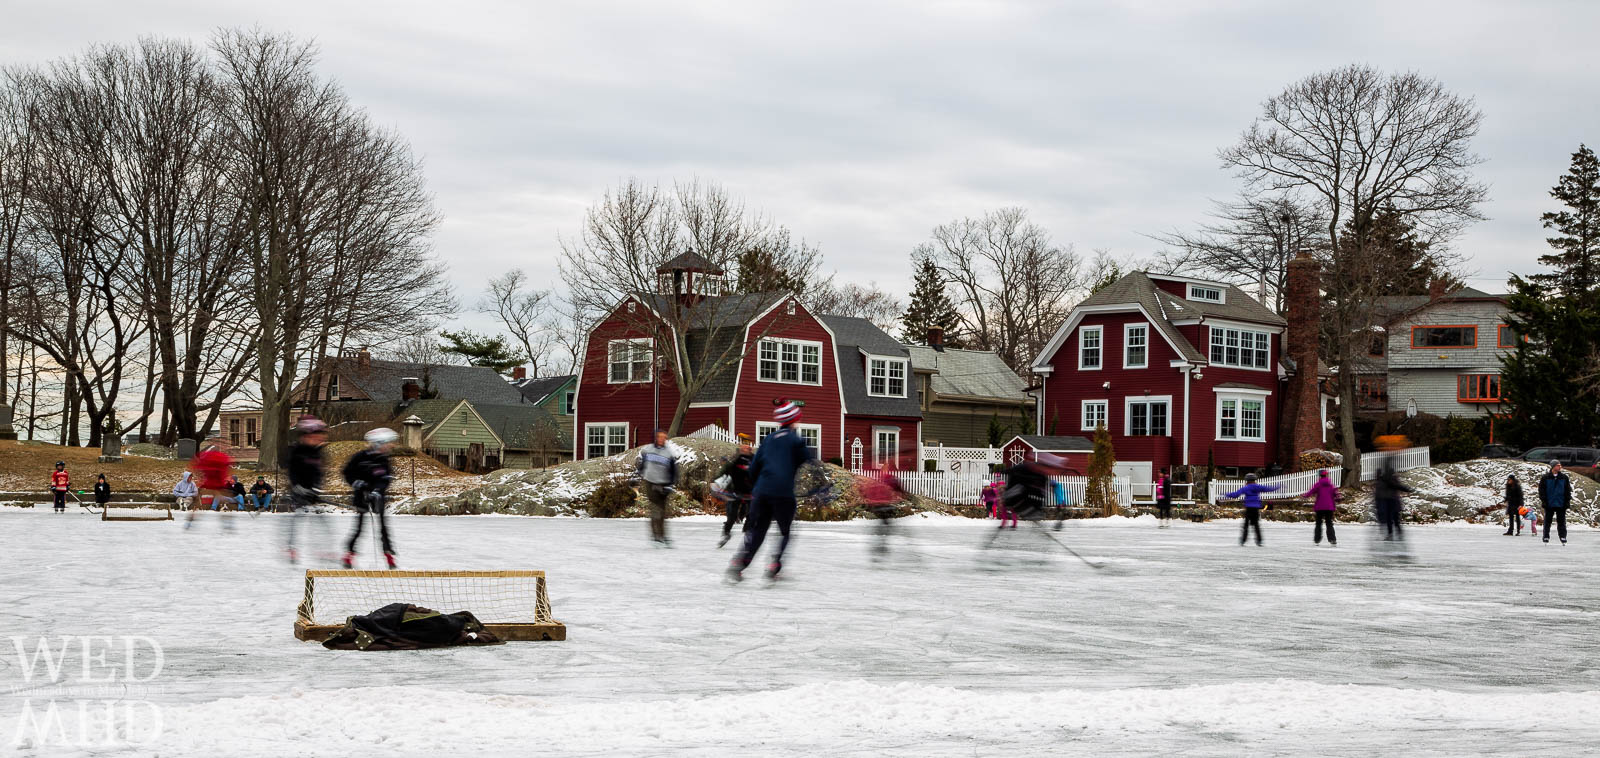 Kids and adults enjoy pond skating as well as a pickup hockey game on a frozen Redds Pond in Marblehead